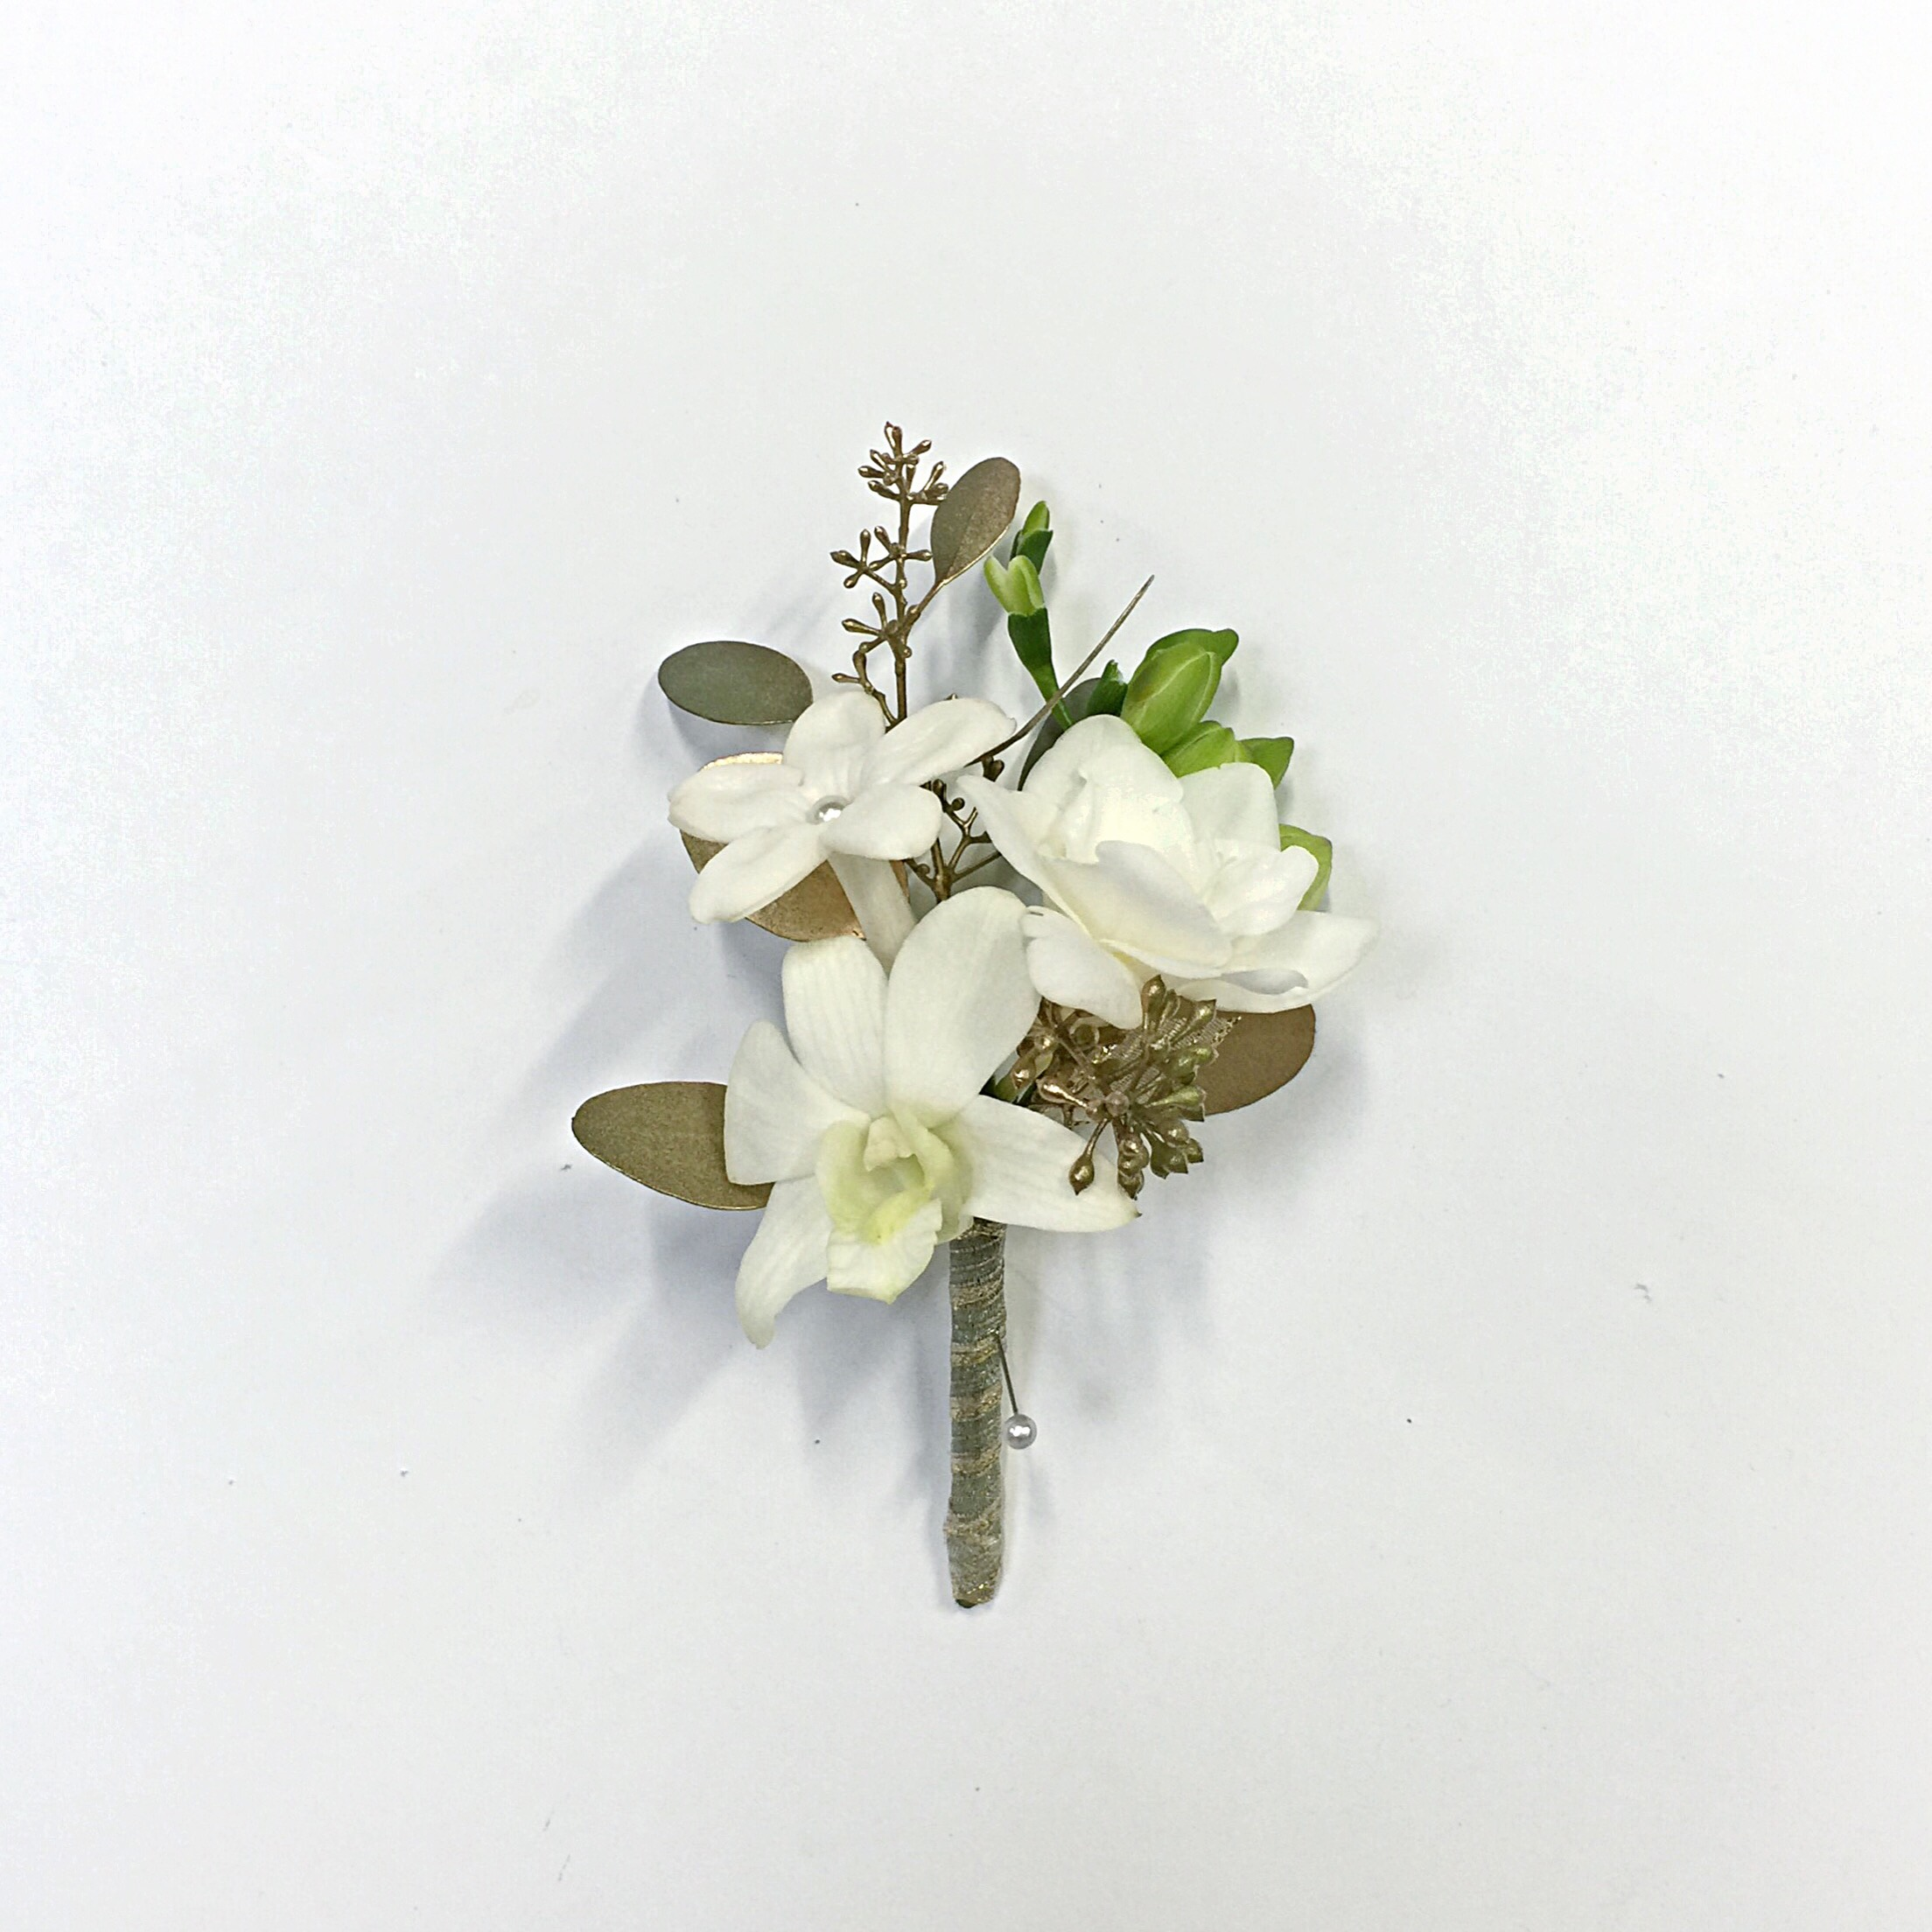 Flower arrangements gallery floral sunshine 3 white flowers boutonniere mightylinksfo Image collections